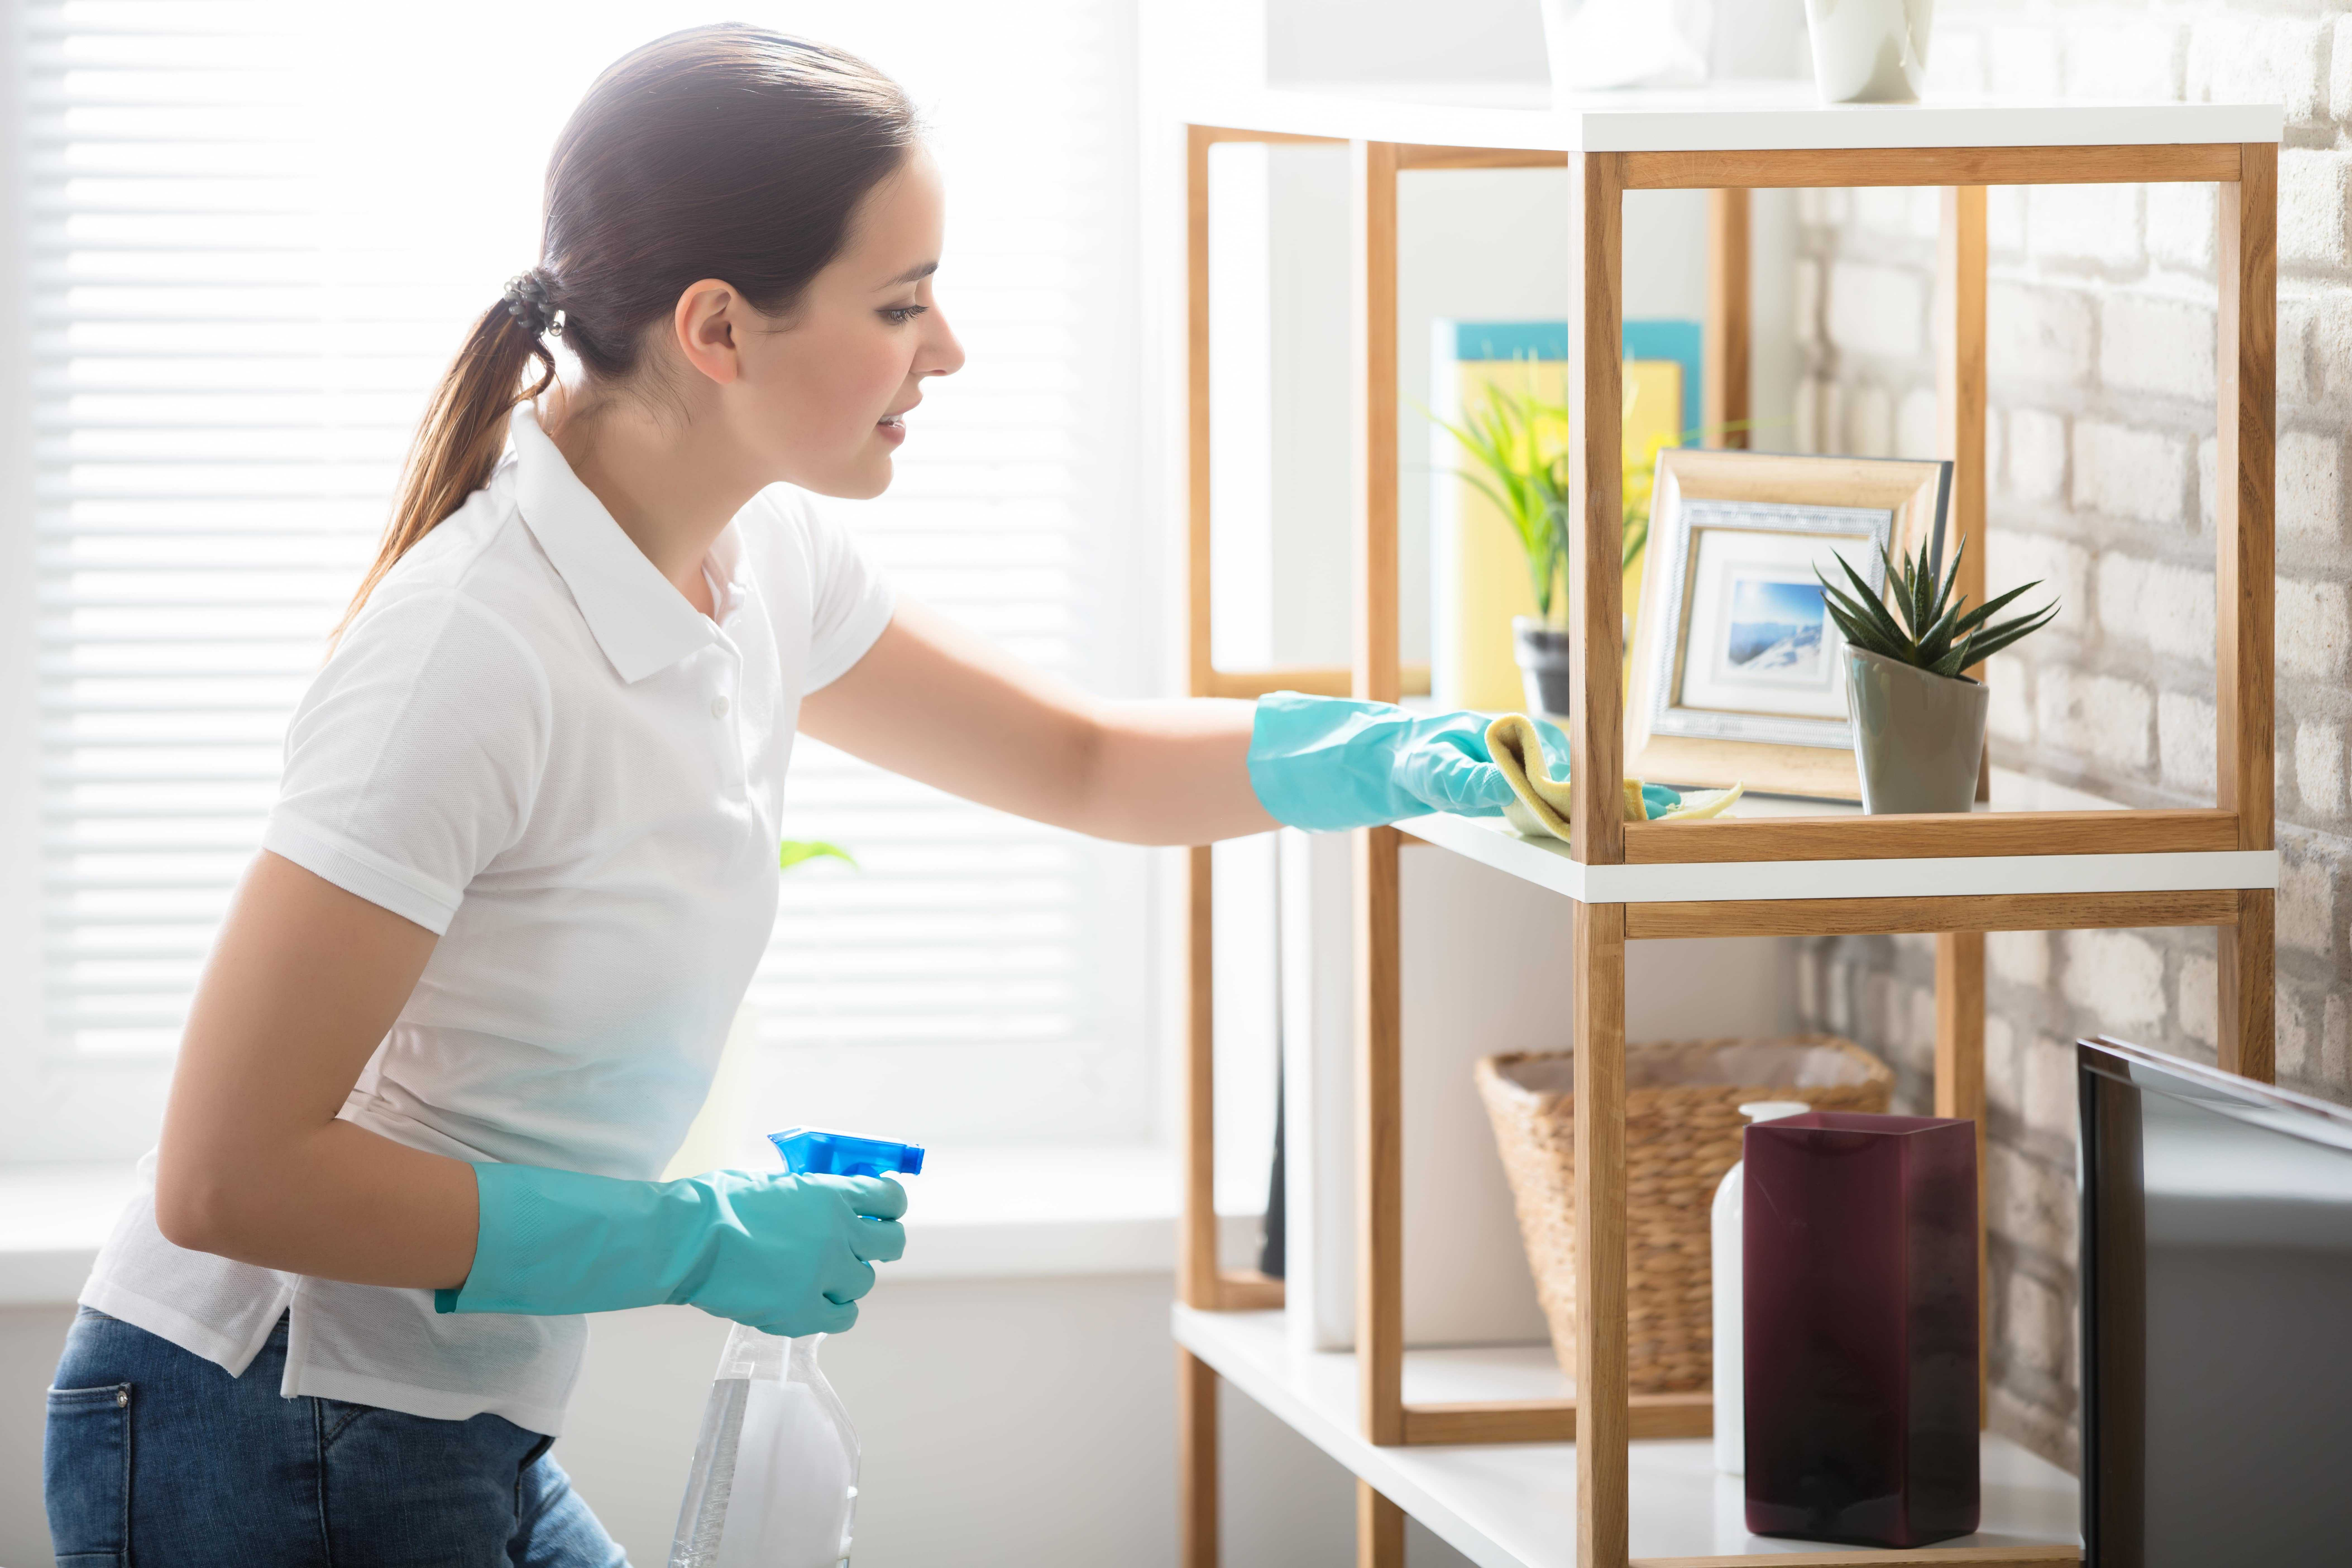 Want to Know How to Clean Your House Fast?